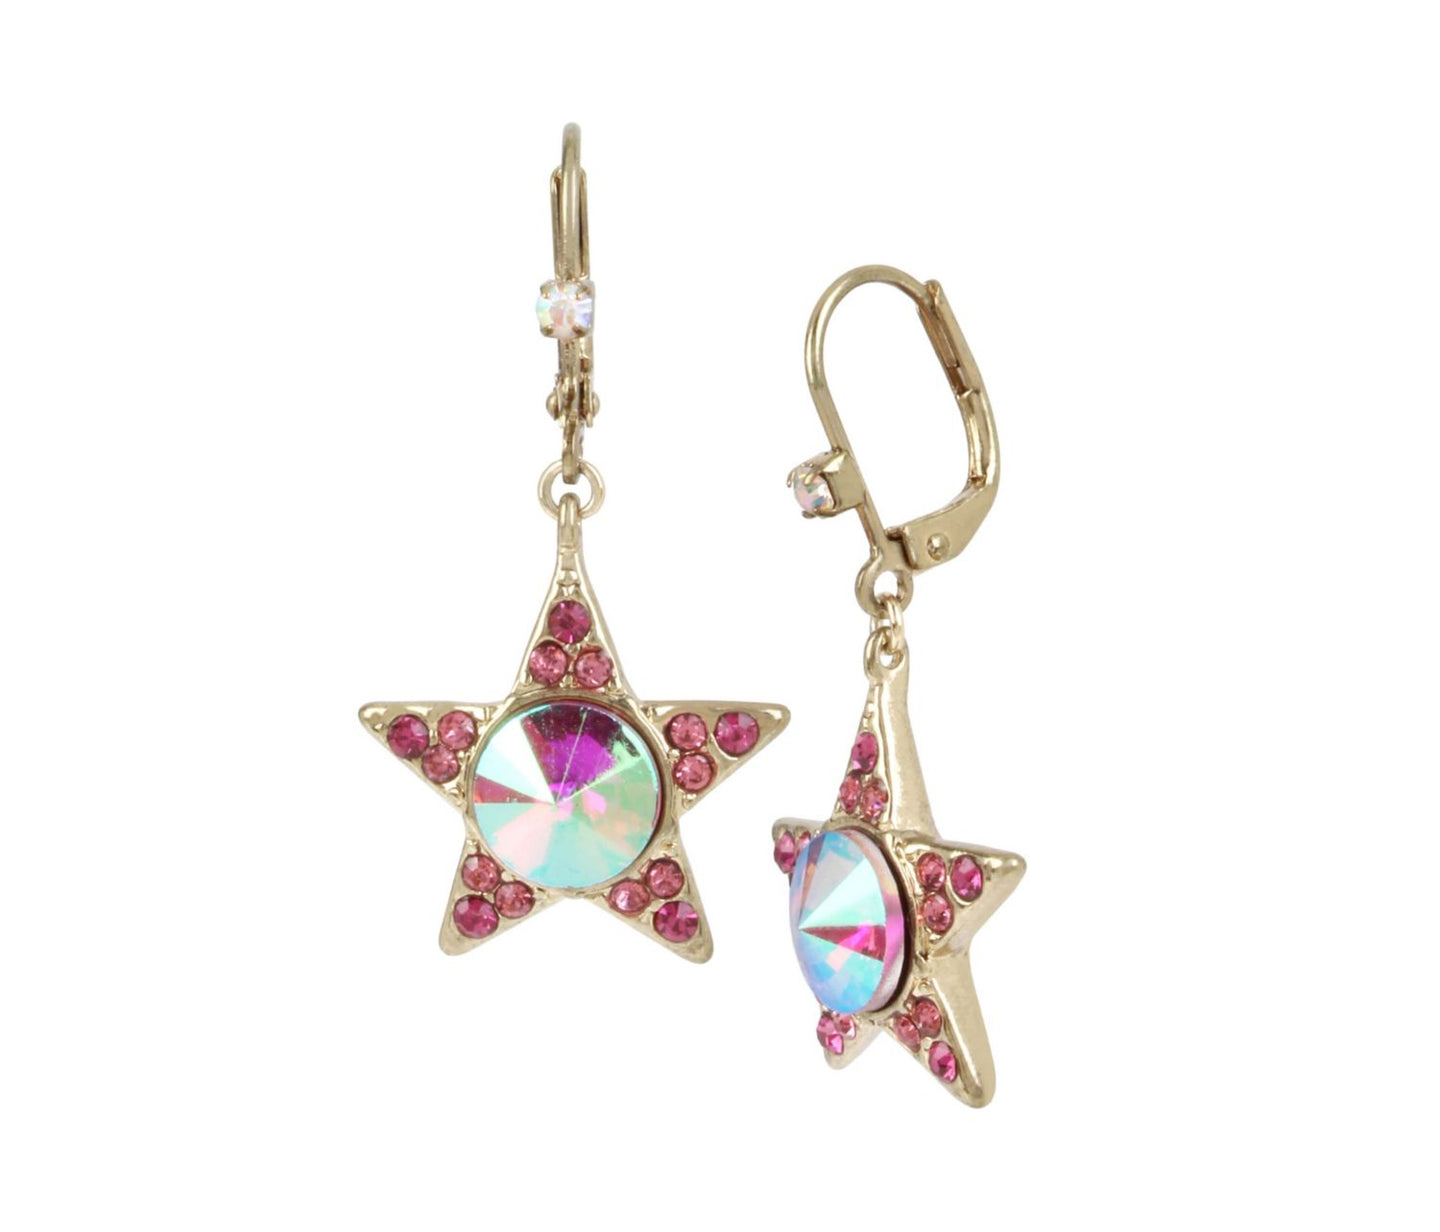 MAGICAL CREATURES STAR EARRINGS PINK - JEWELRY - Betsey Johnson